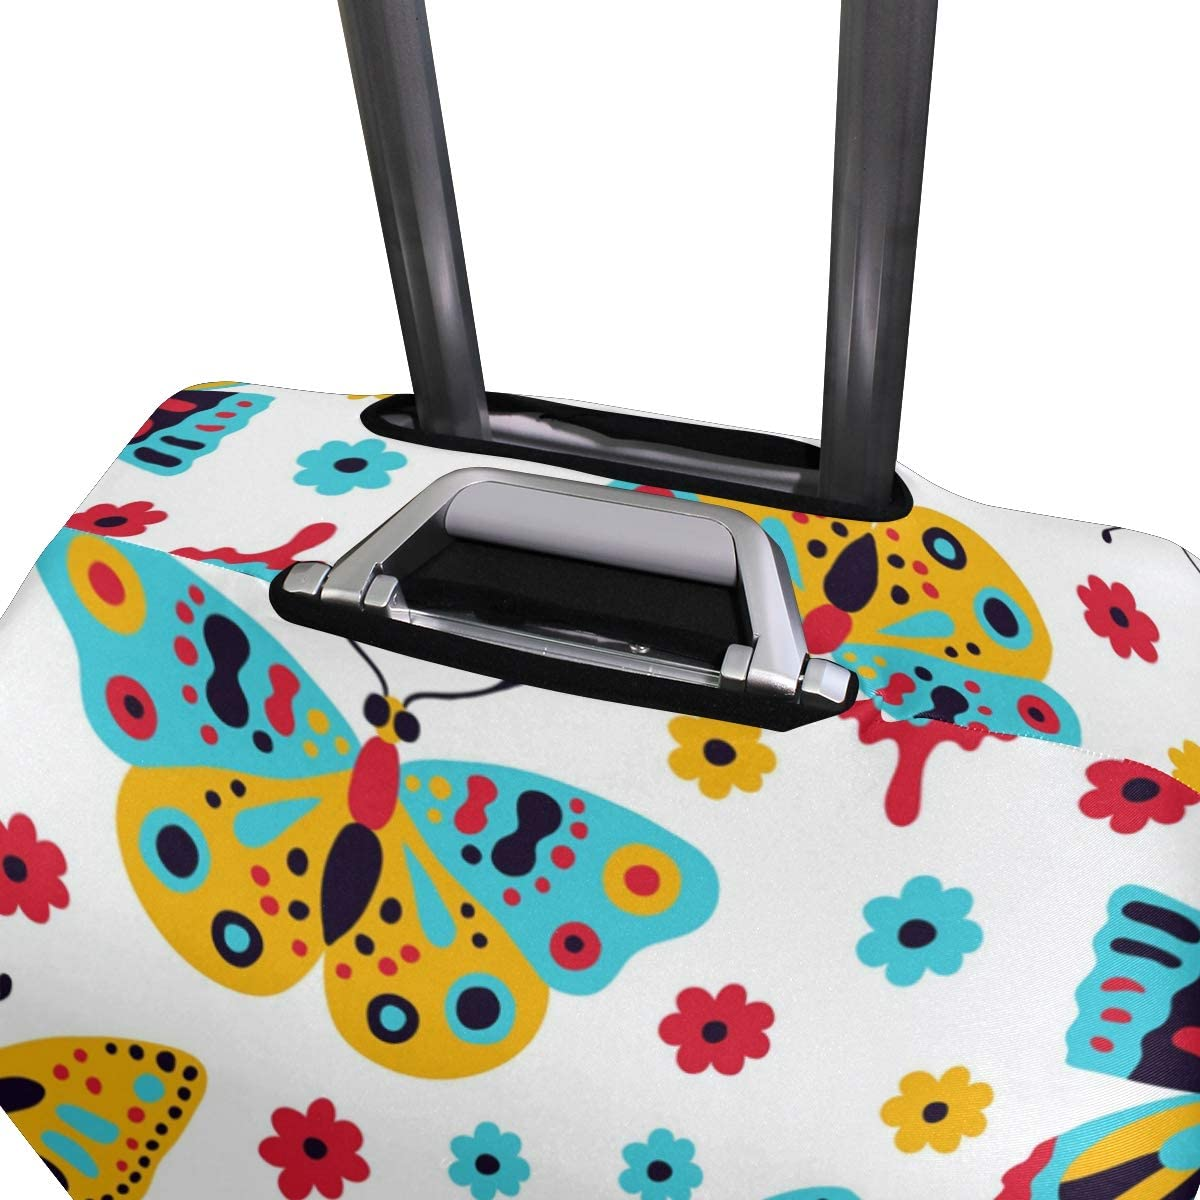 FOLPPLY Colorful Butterfly Luggage Cover Baggage Suitcase Travel Protector Fit for 18-32 Inch